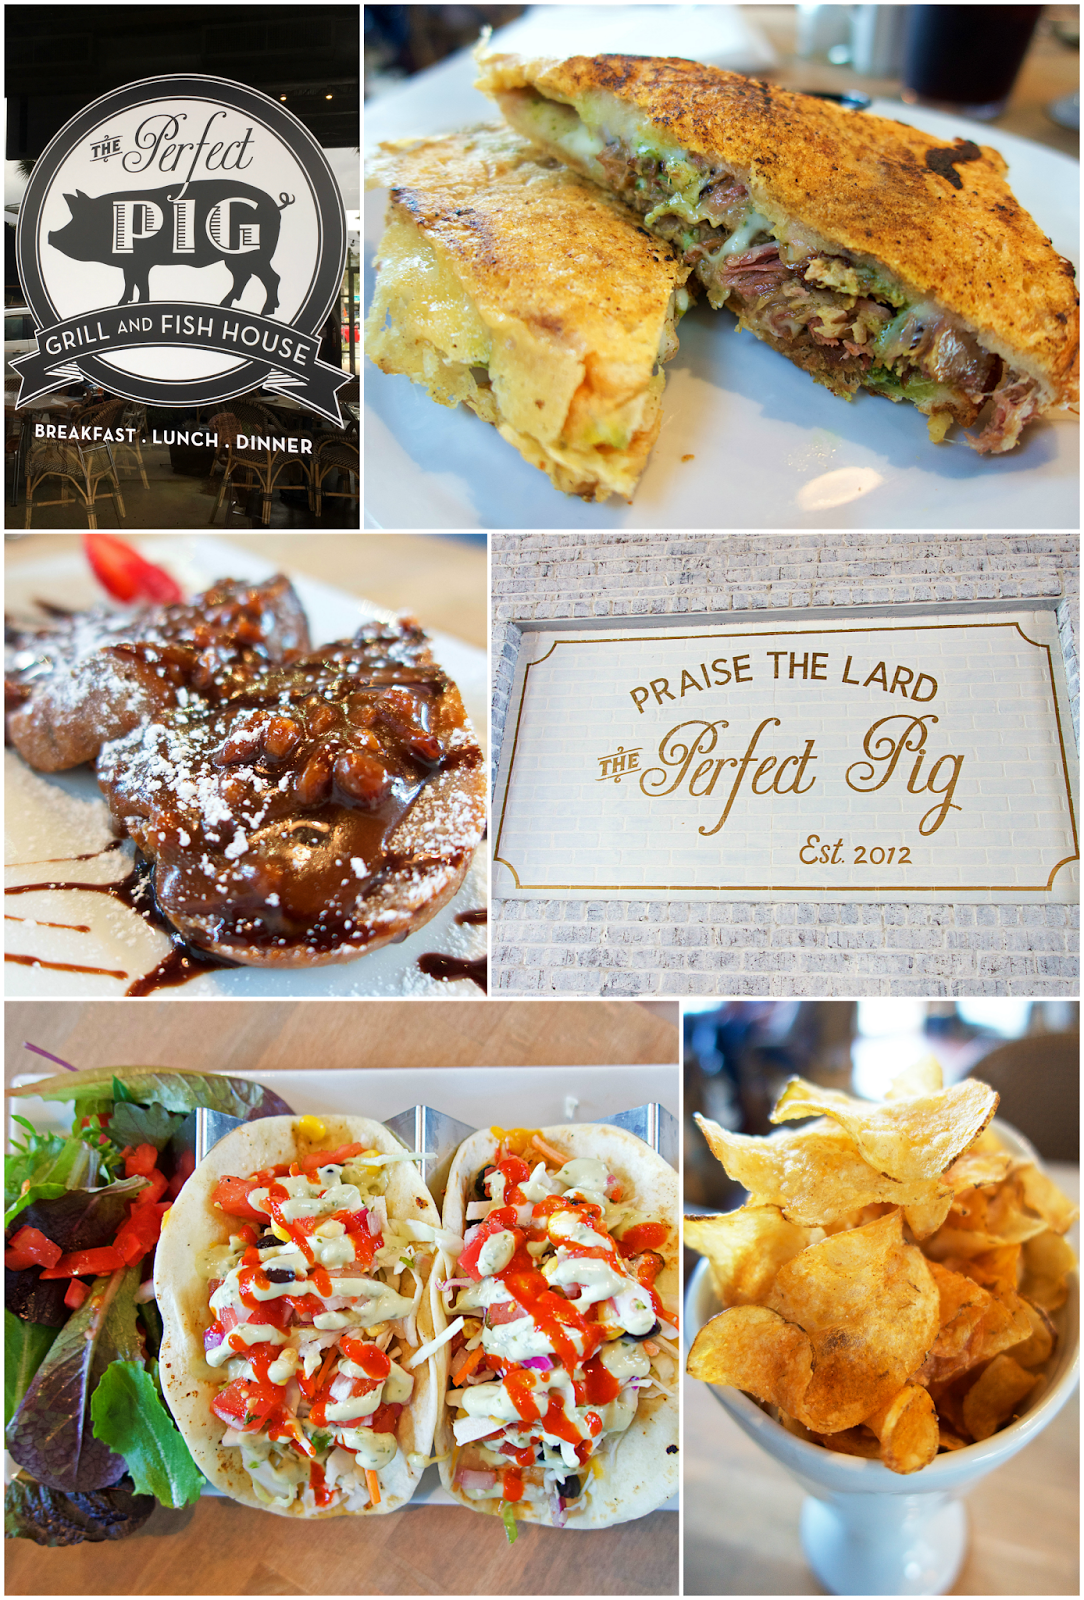 The Perfect Pig - Santa Rosa Beach, FL - A MUST if you are on 30A. The fish tacos are life changing! The Parmesan Crusted Grilled Cheese is the best I've ever eaten! You MUST eat here!